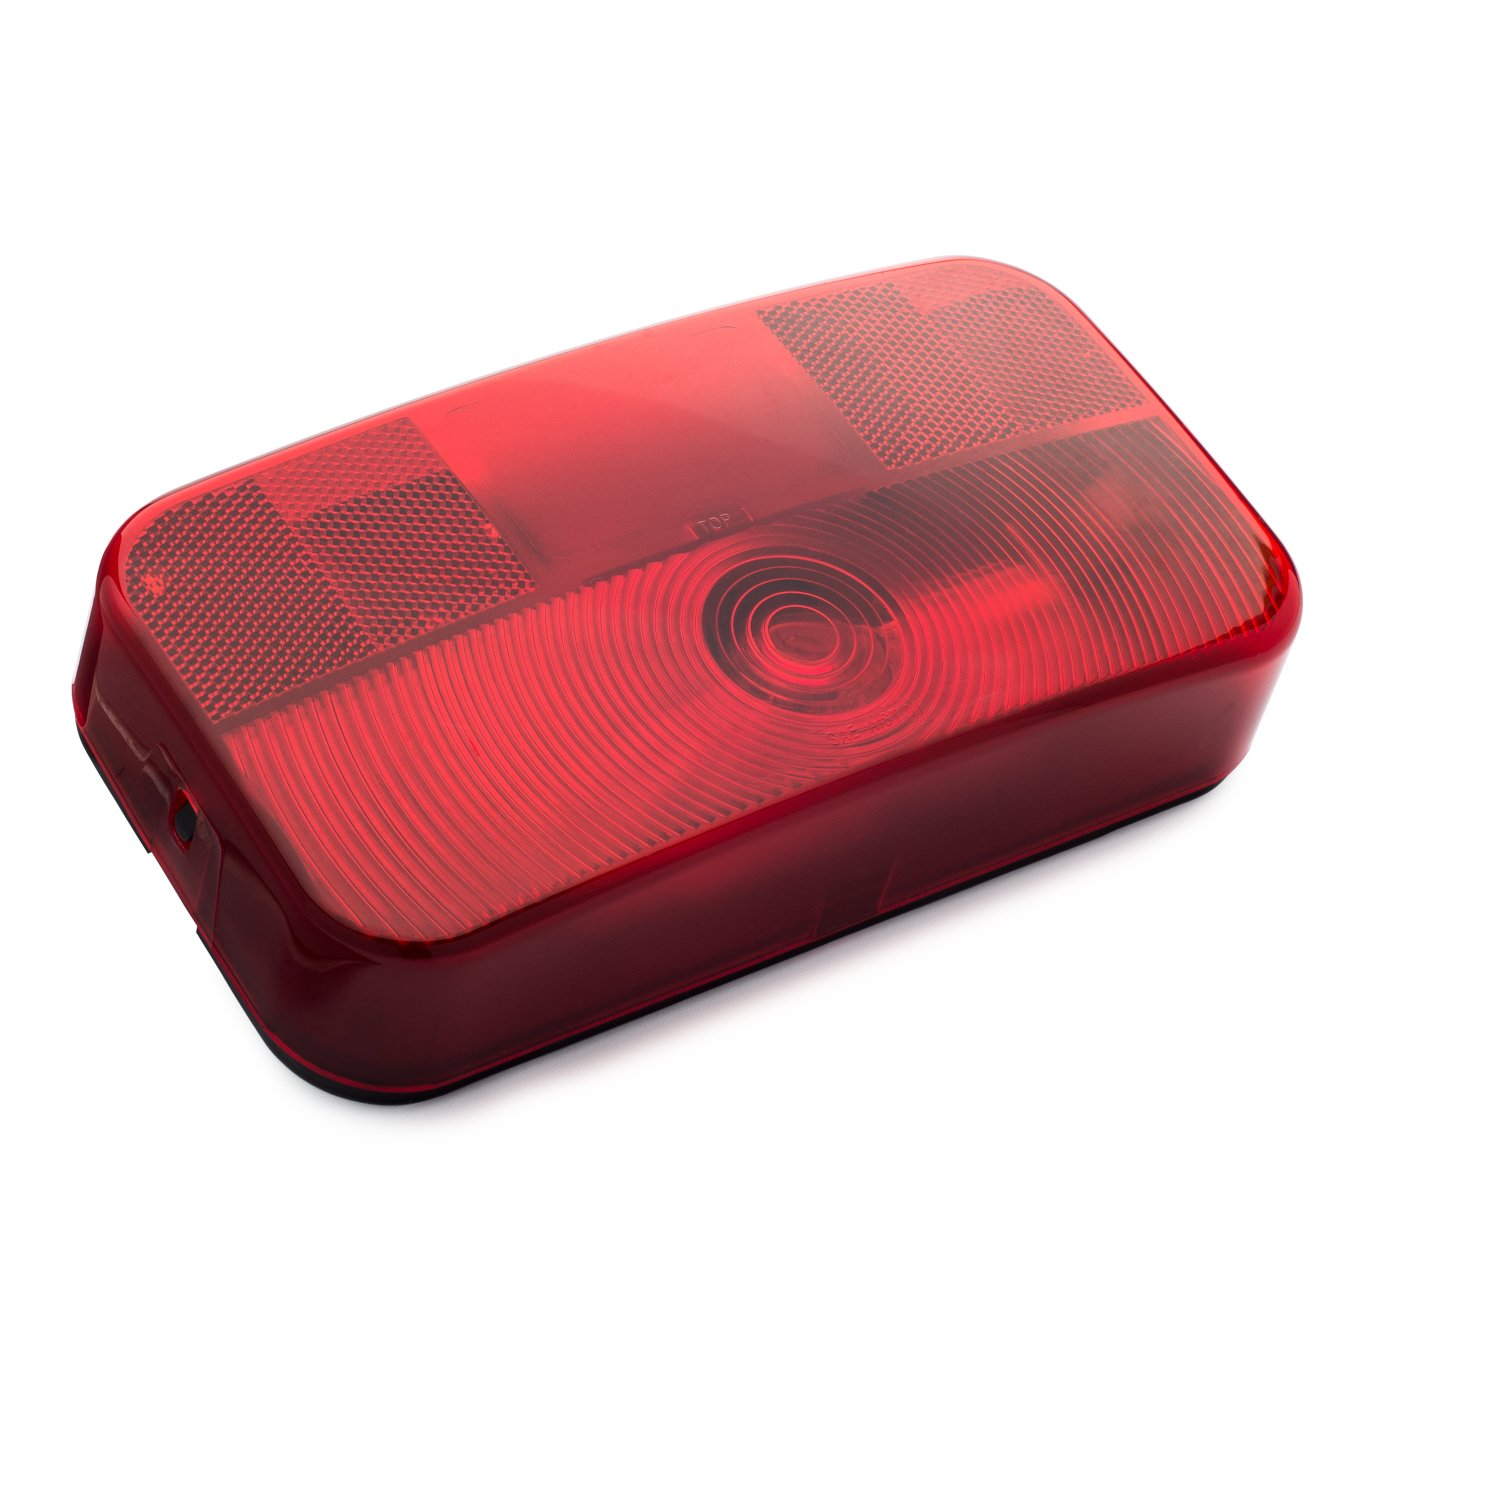 Lumitronics Surface Mount Tail Light For Safe Driving On The Road - RV Stop/Turn